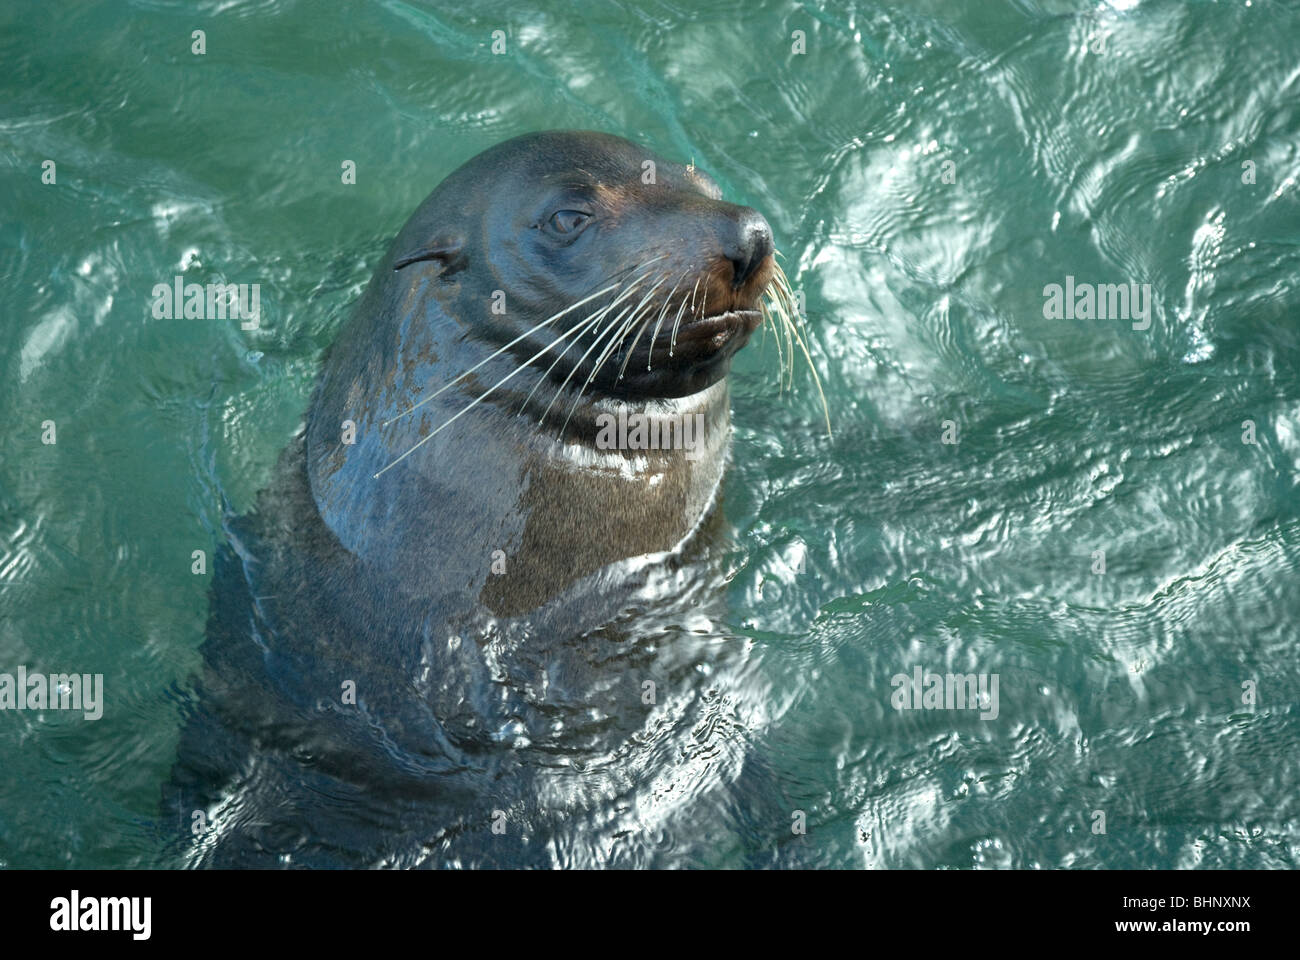 Australian Fur Seal Swimming Cape Jervis South Australia